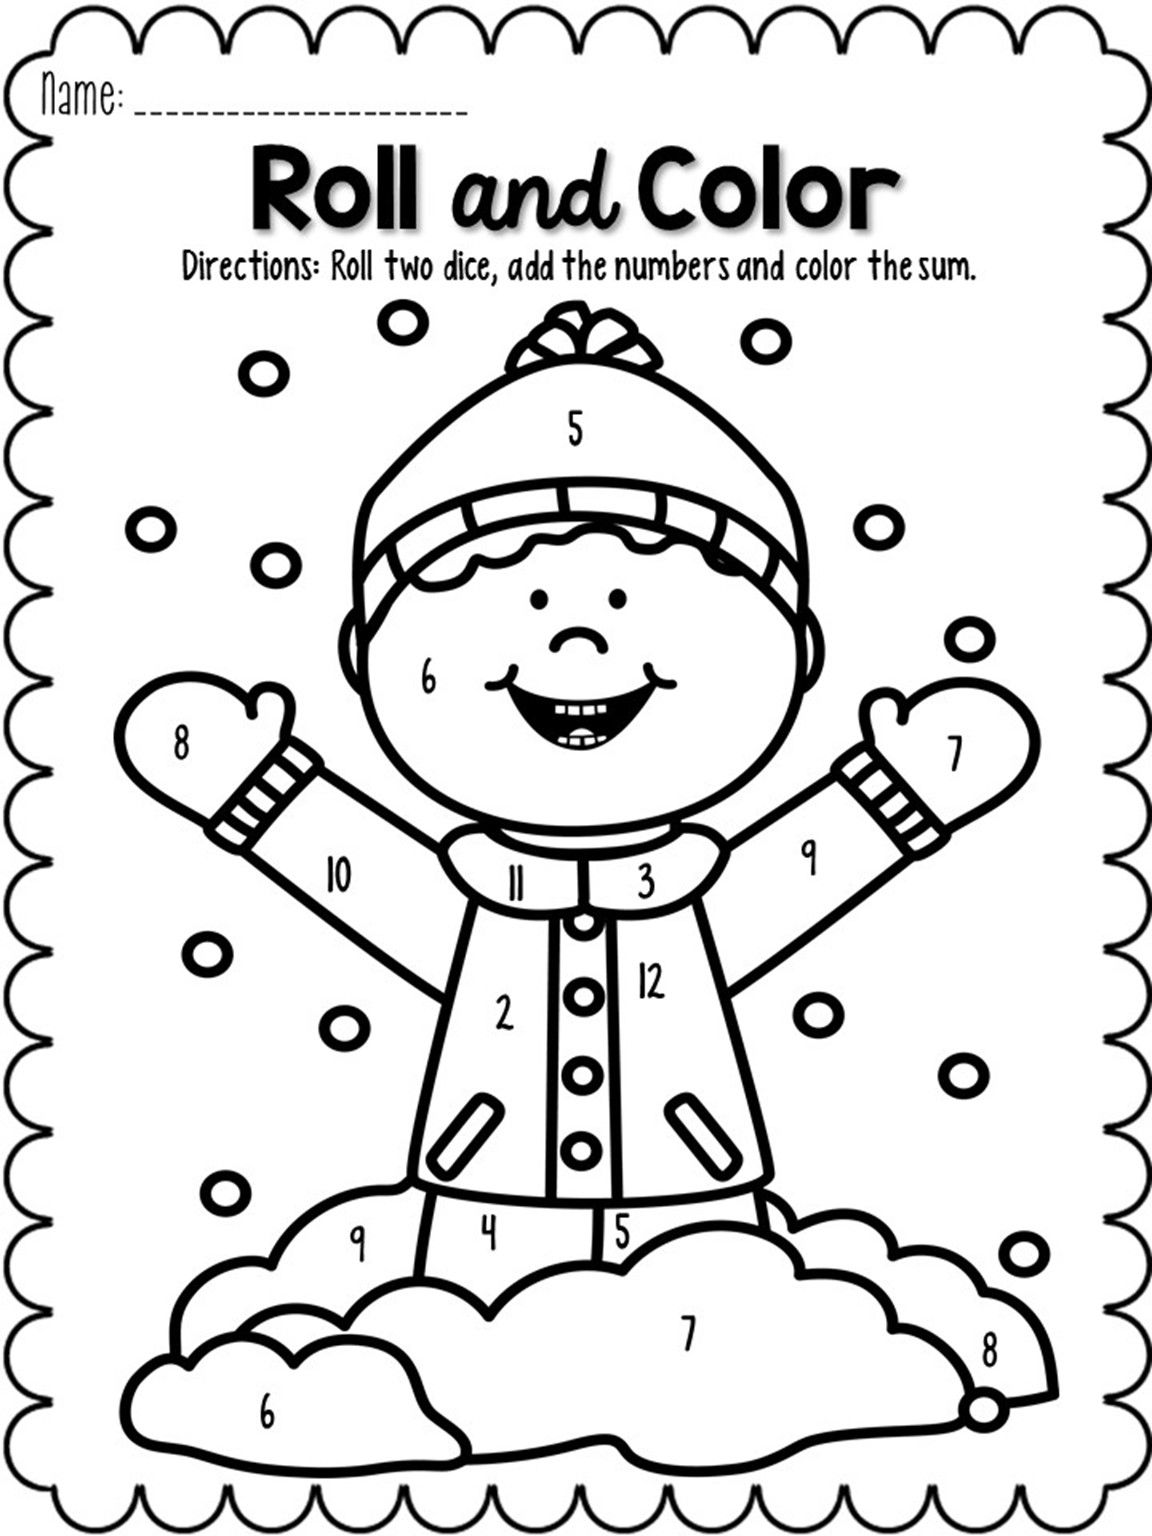 Roll and Color January Coloring pages winter, Easy